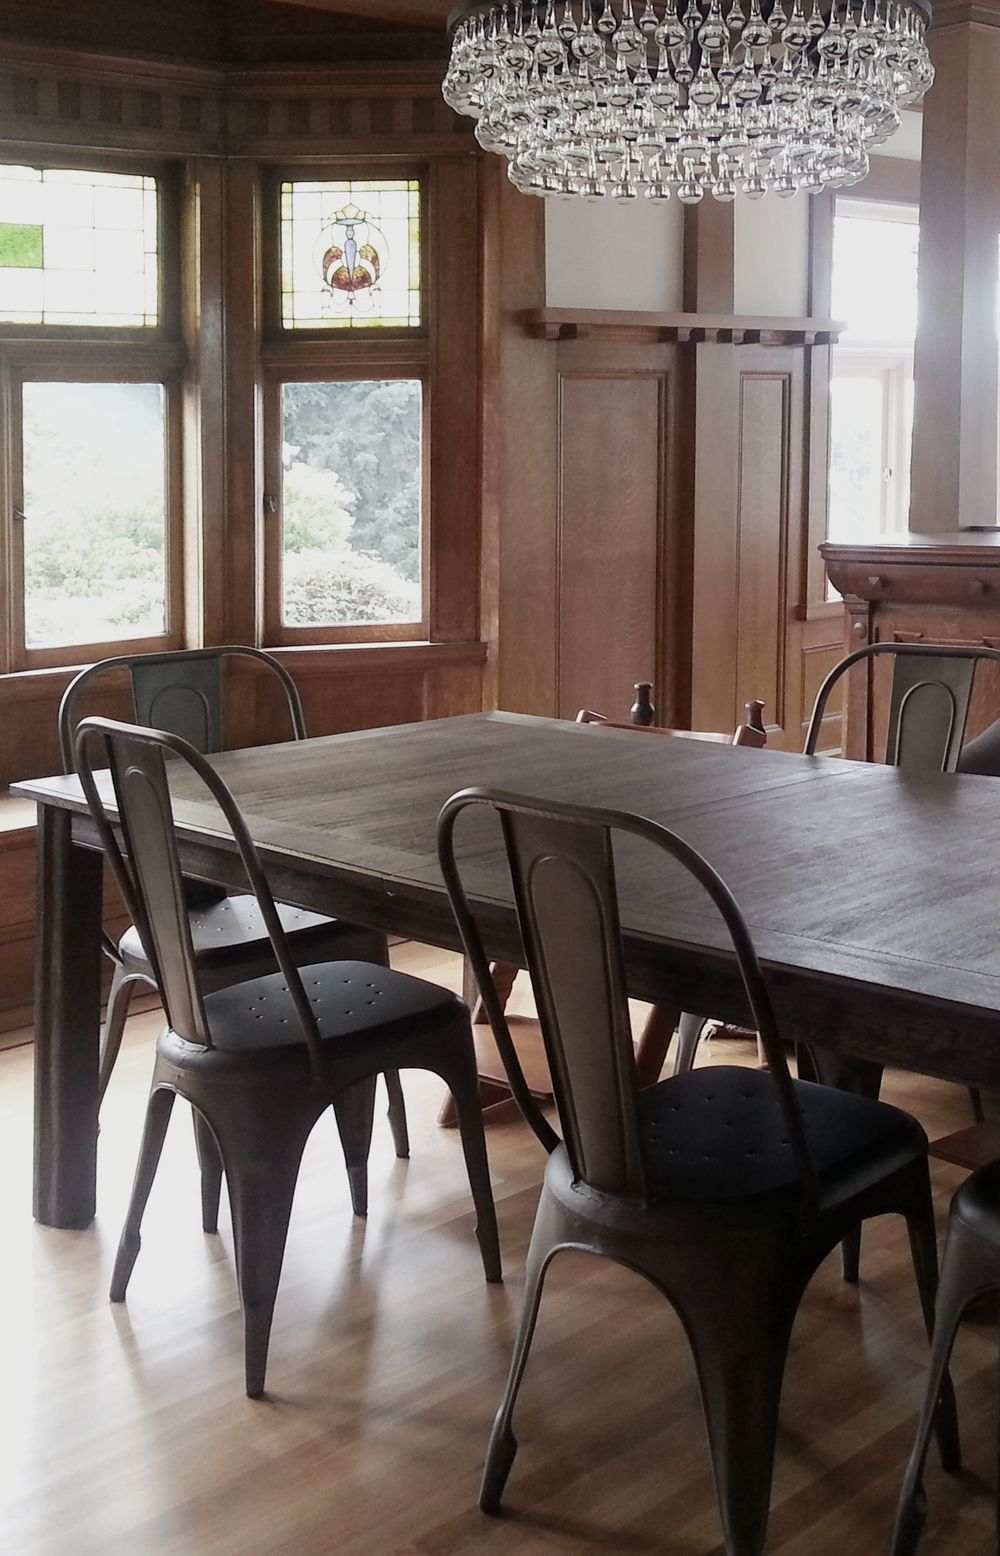 phinney ridge craftsman dining room - wood paneling, chandelier